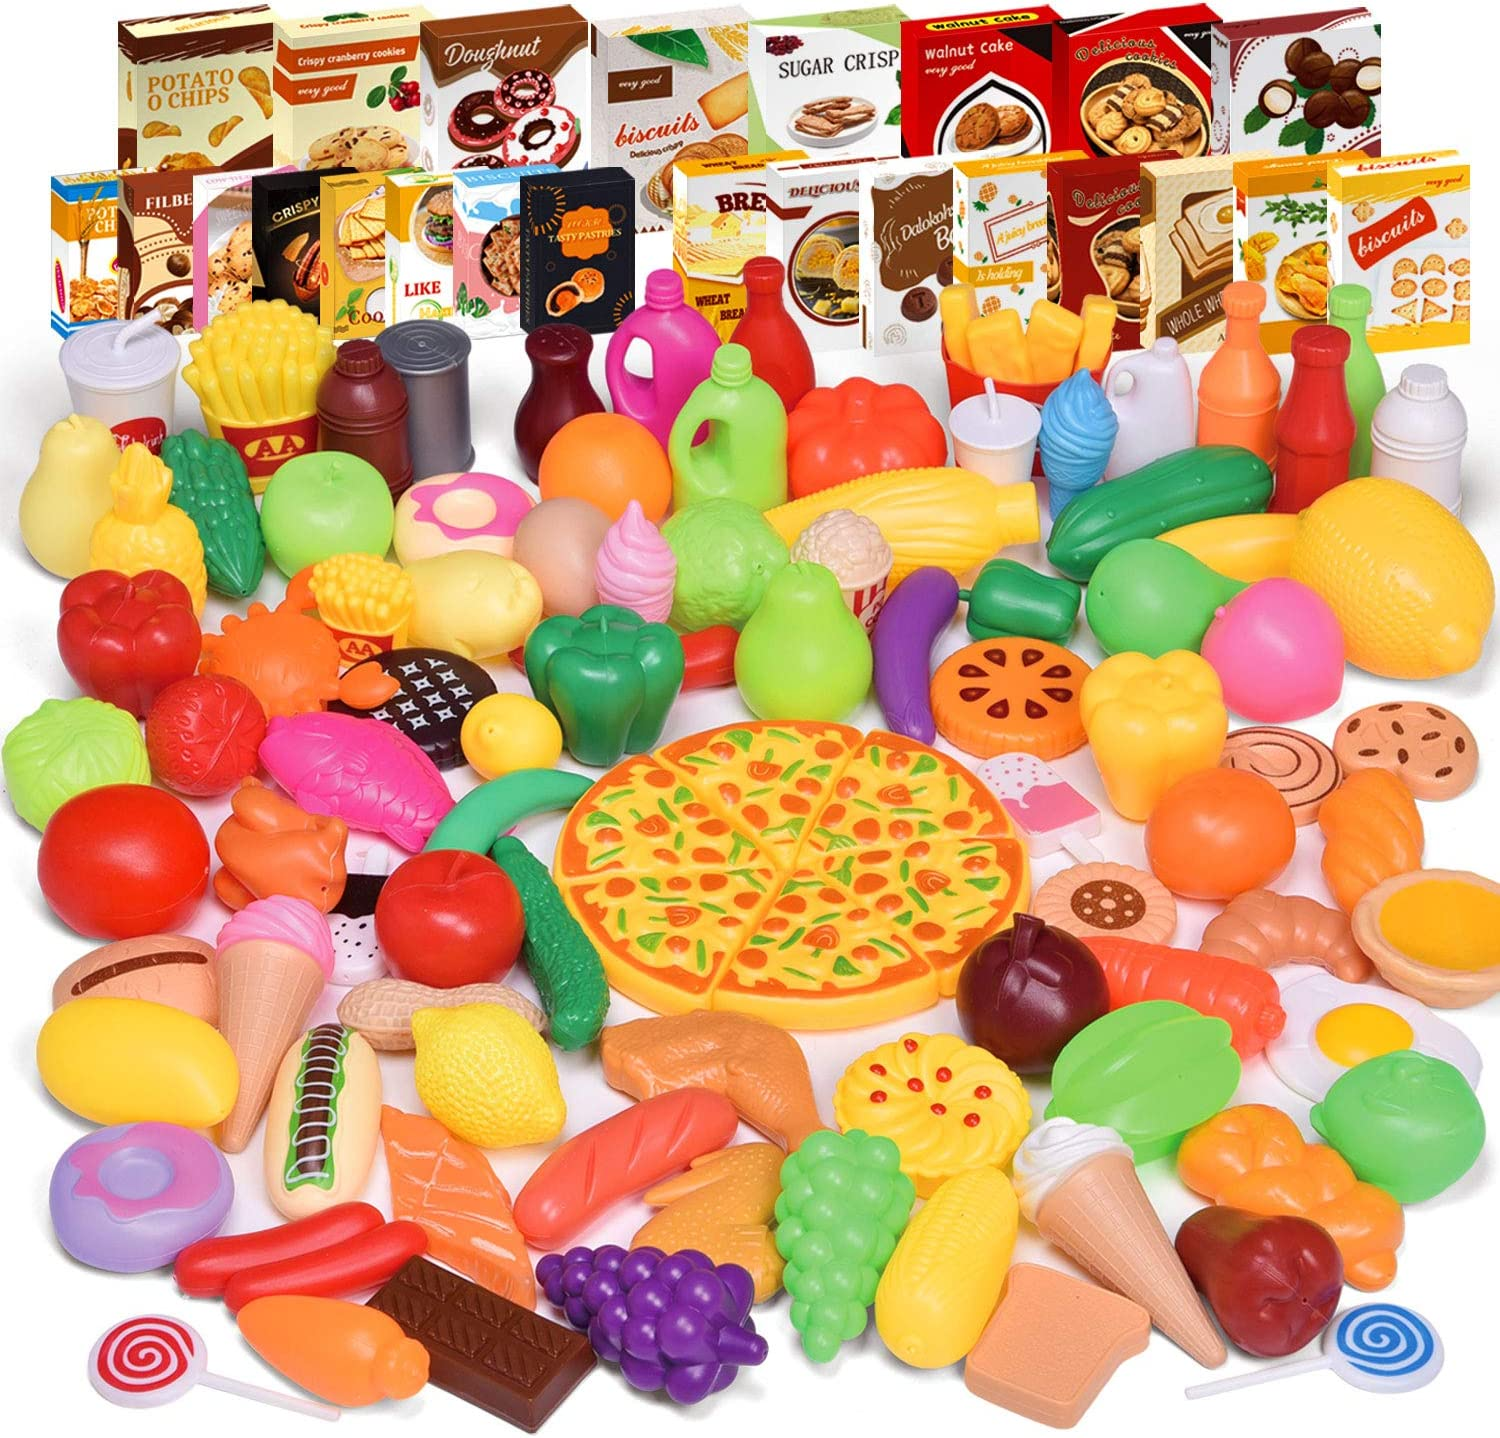 FUN LITTLE TOYS 128 PCs Play Food for Kids Kitchen, Toy Foods with Different Fruit, Cans and Cartons for Pretend Play, Play Kitchen Accessories